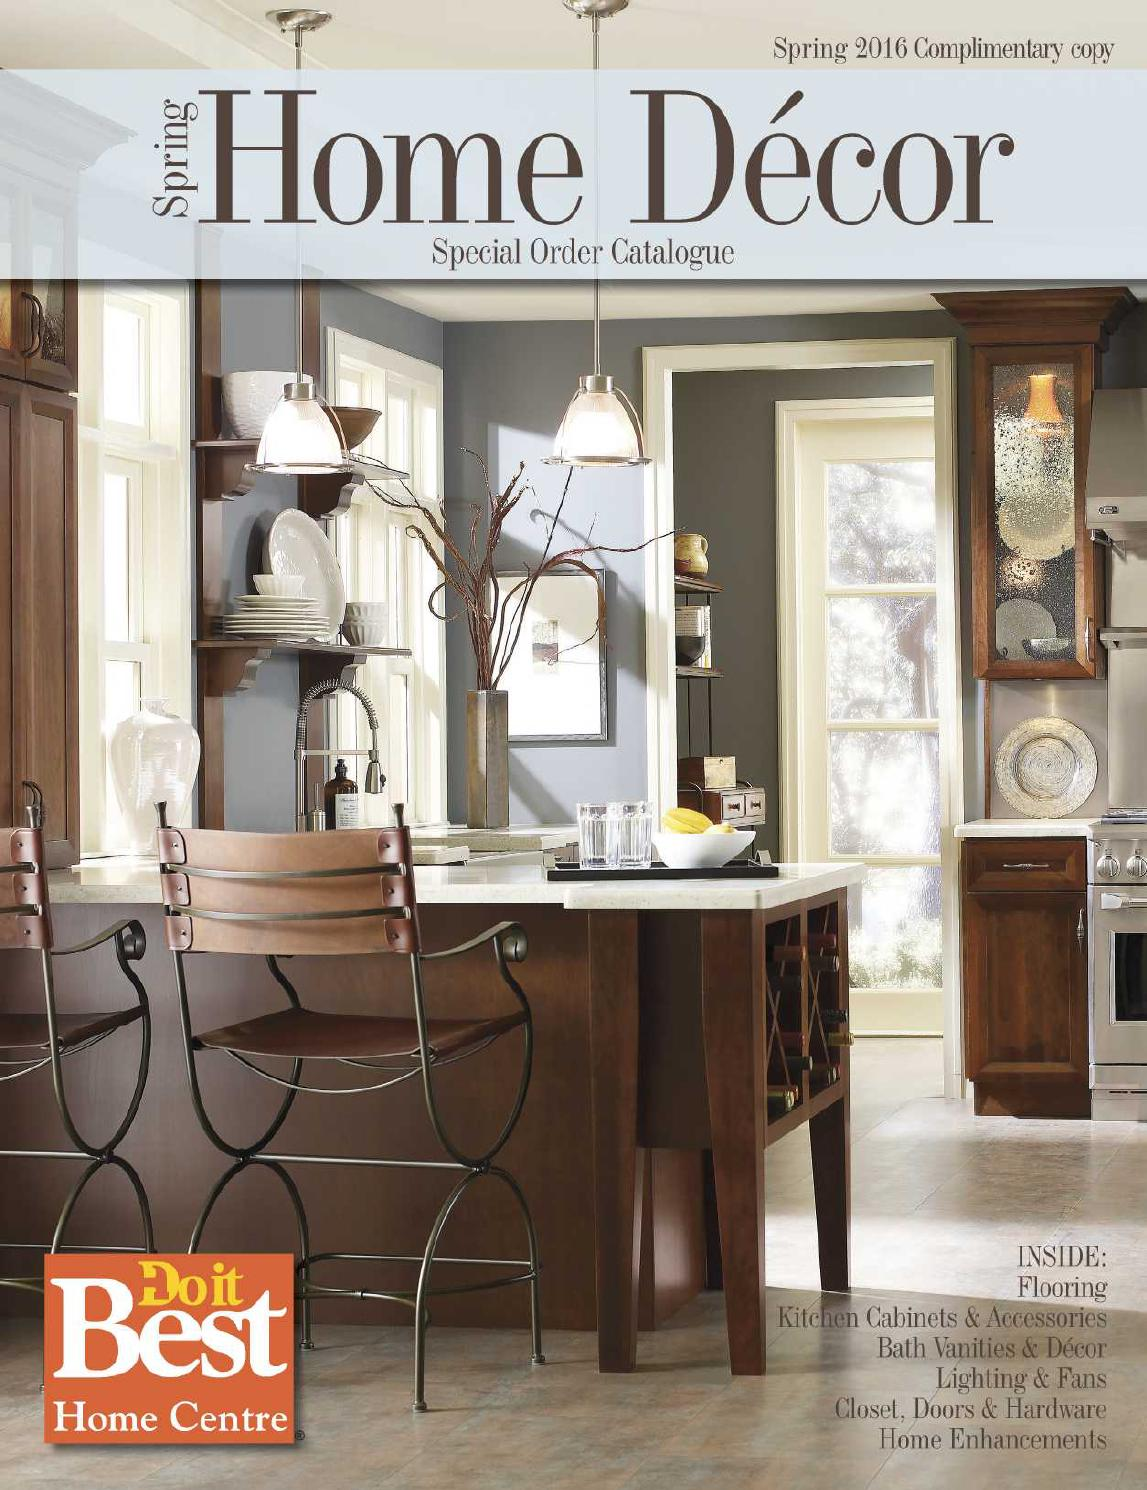 Home decor catalog do it best by do it best barbados issuu for Best home catalogs